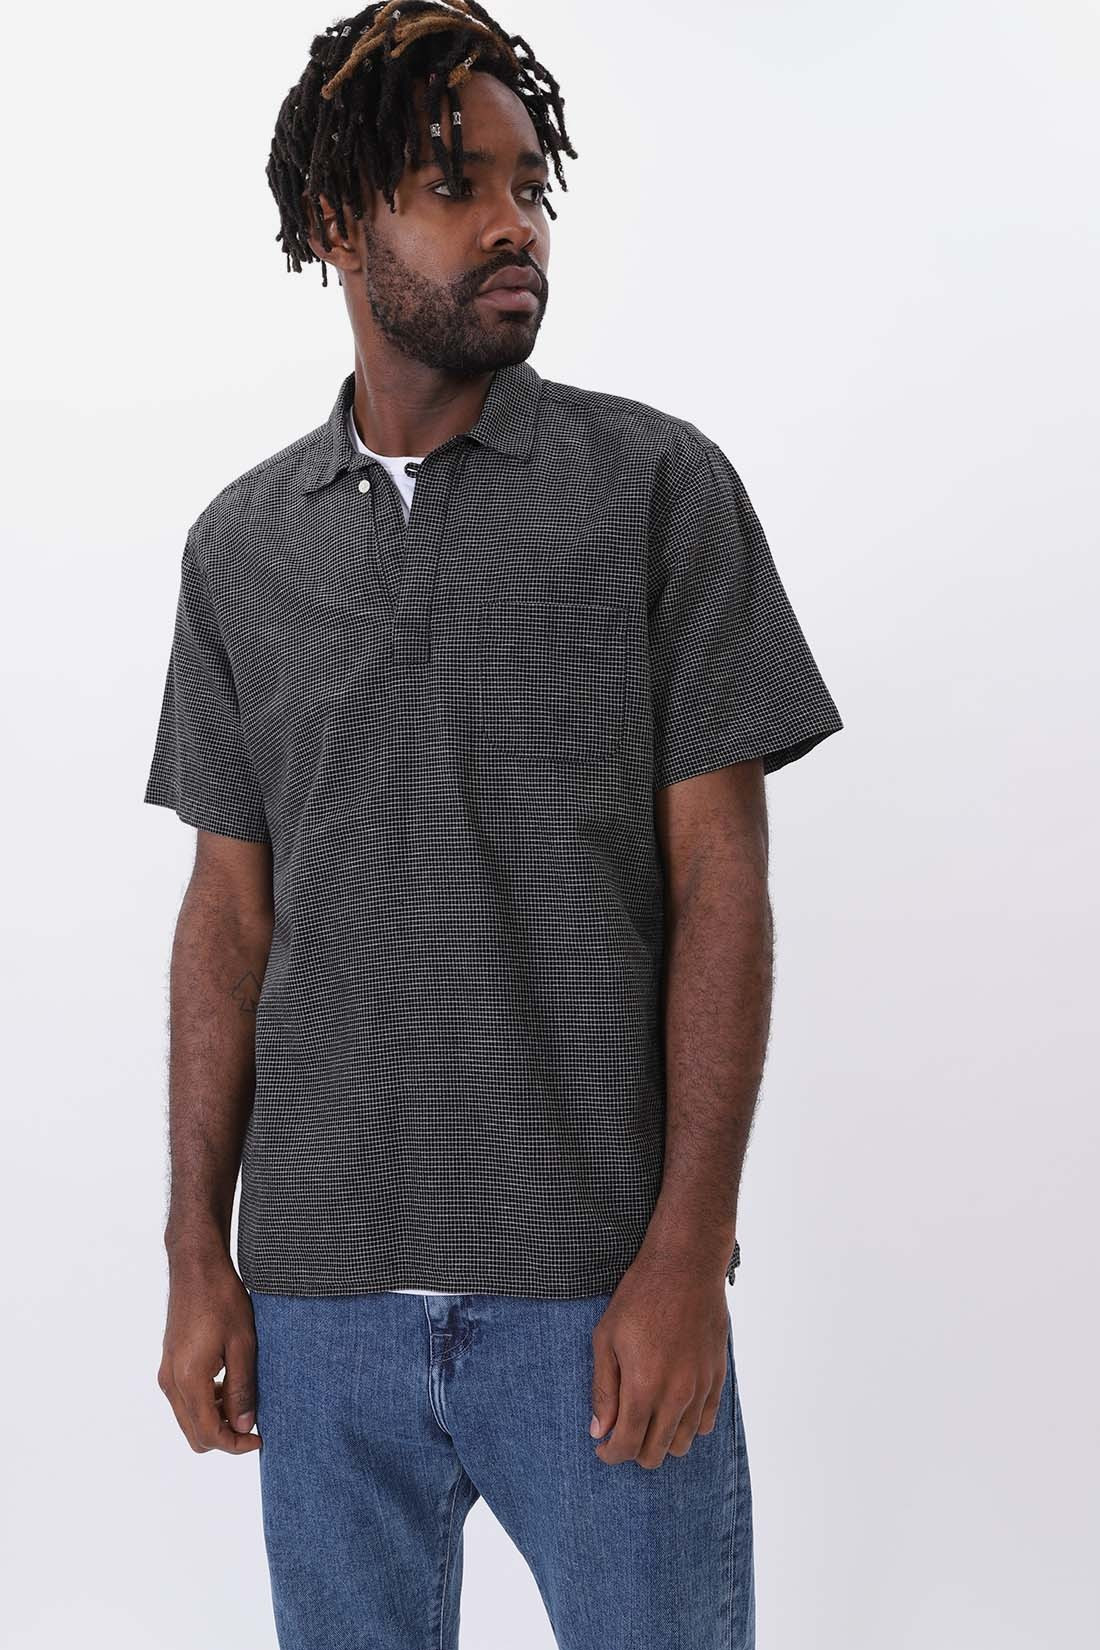 OLIVER SPENCER / Yarmouth shirt Black